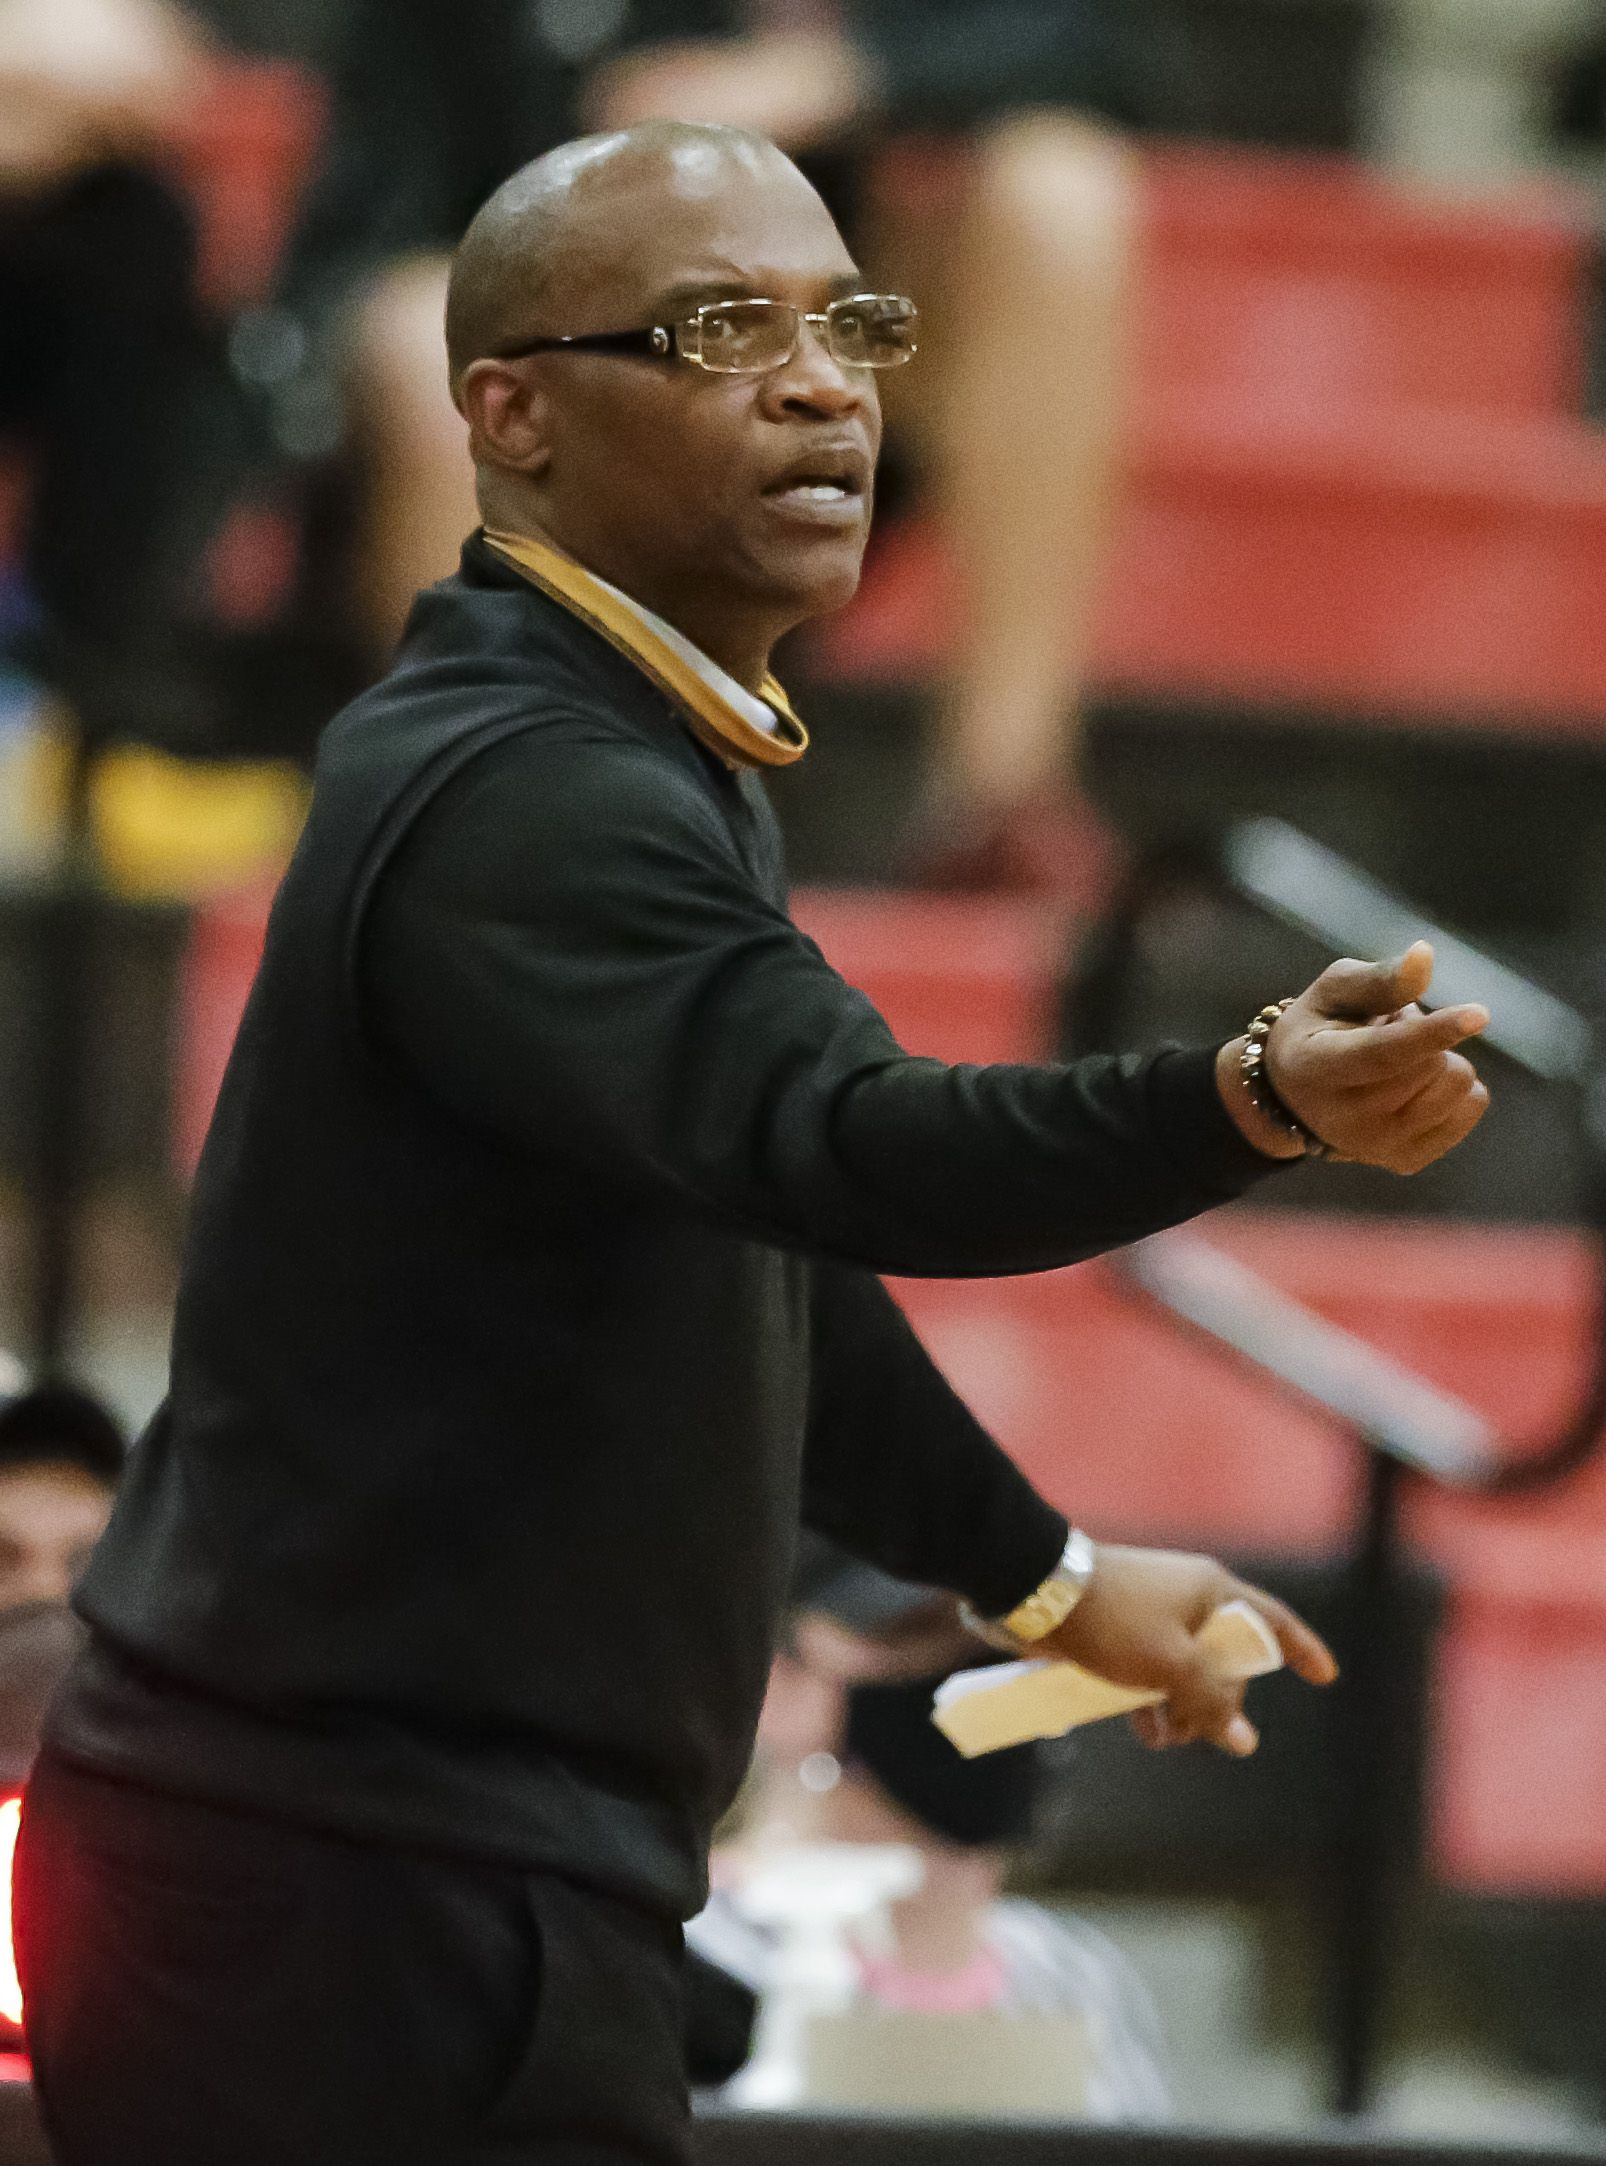 South Oak Cliff head coach James Mays II gives instructions to his players during the first half of a Class 5A area-round playoff basketball game against Love Joy at Lake Highlands High School in Dallas, Wednesday, February 24, 2021. South Oak Cliff won 46-44. (Brandon Wade/Special Contributor)